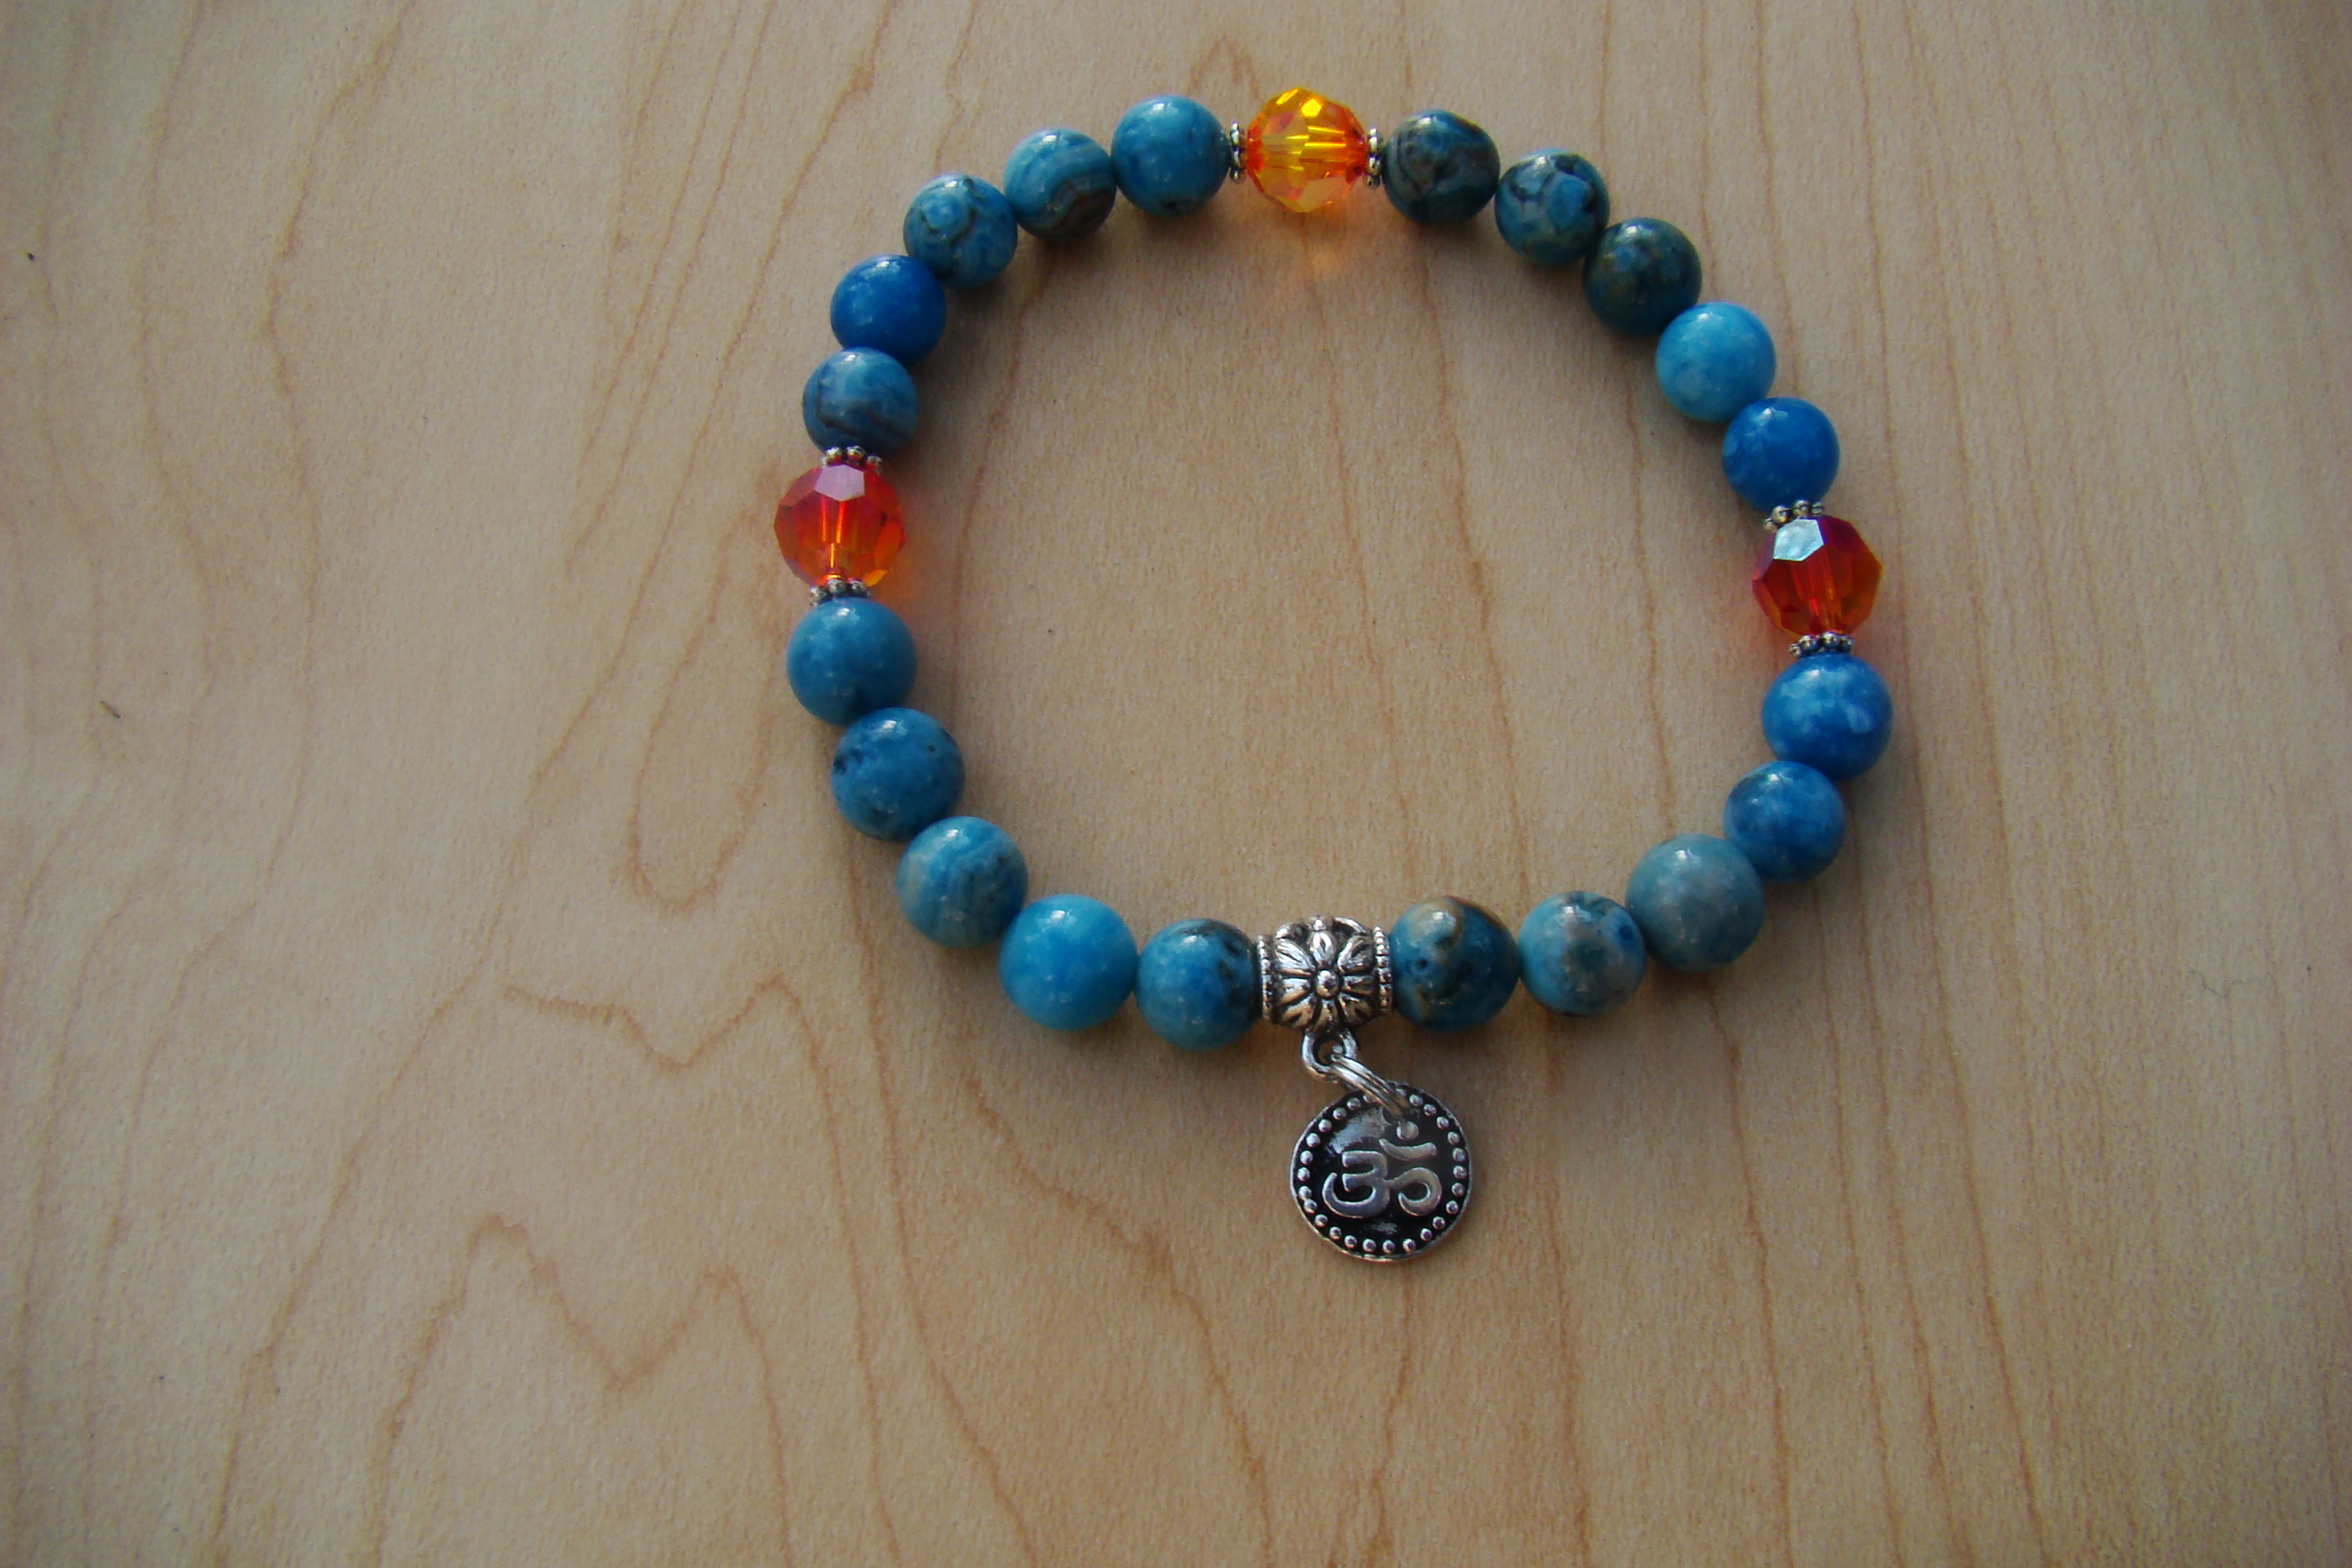 Blue Crazylace Agate with an OM Symbol